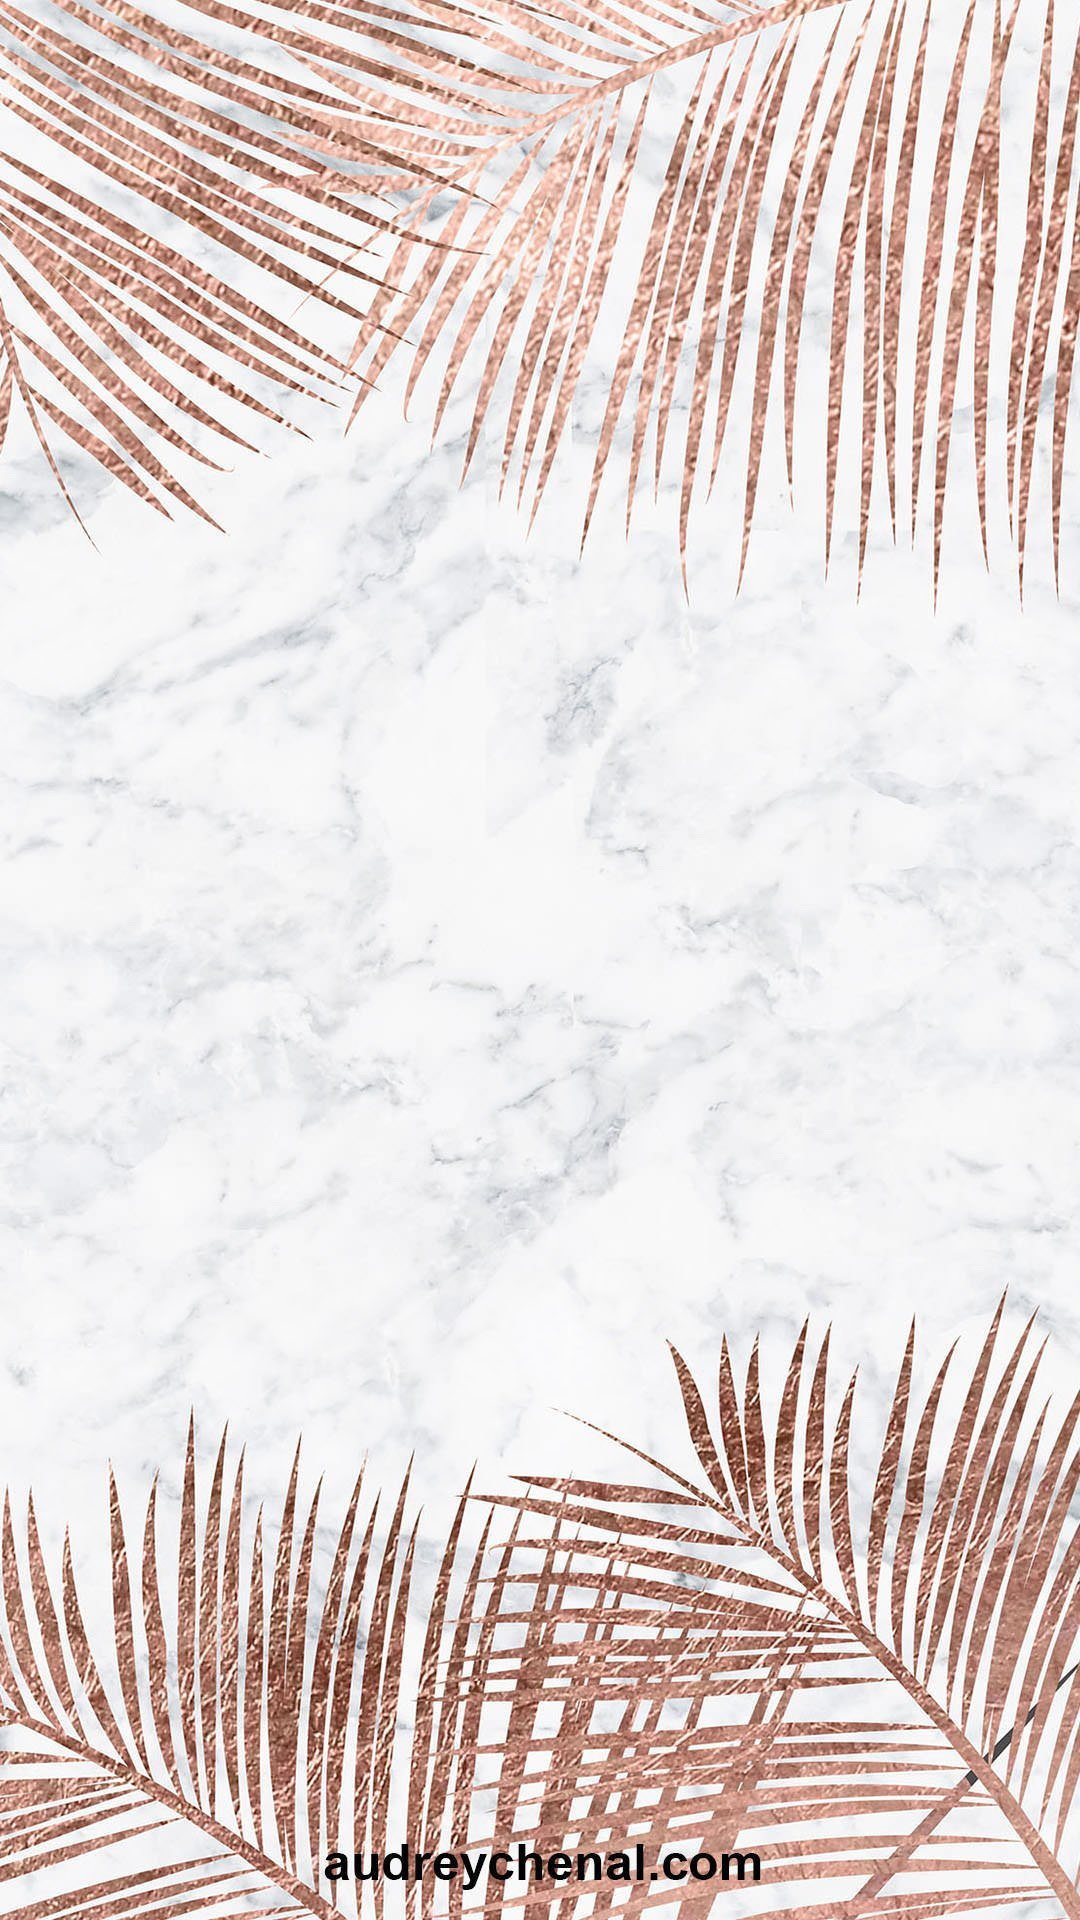 wallpaper Modern rose gold palm tree white marble by Audrey Chenal